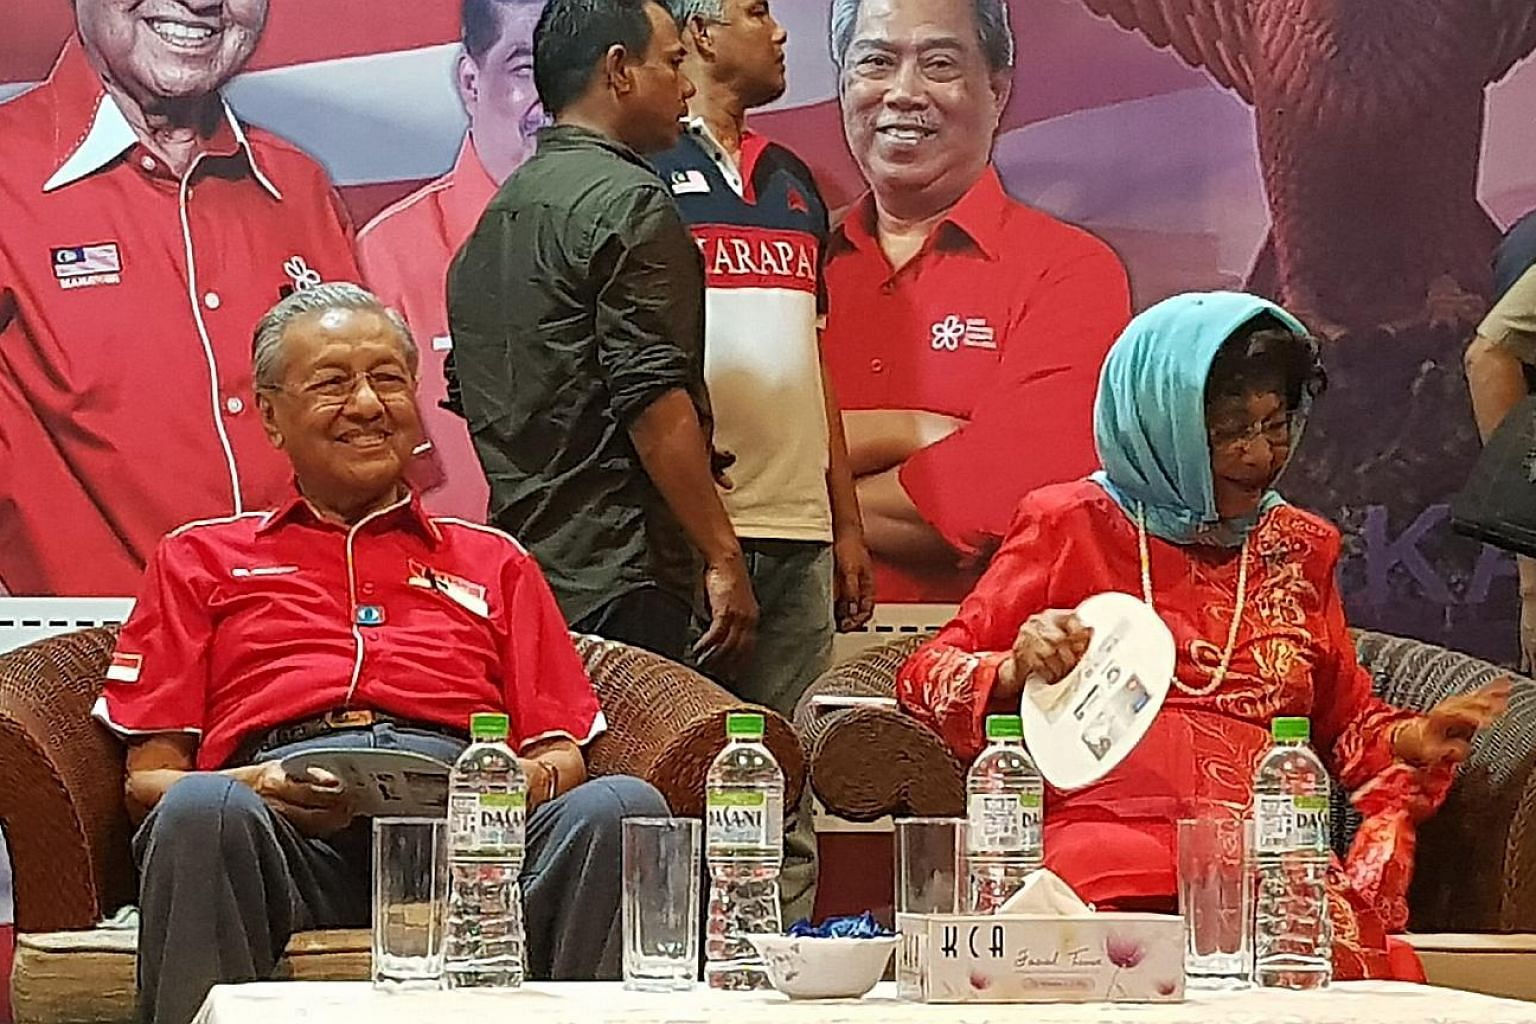 Tun Dr Mahathir Mohamad and his wife Siti Hasmah Mohd Ali at the rally in Langkawi yesterday, which was attended by other senior opposition leaders and several thousand supporters. The Malay-majority island has never fallen into the hands of the oppo